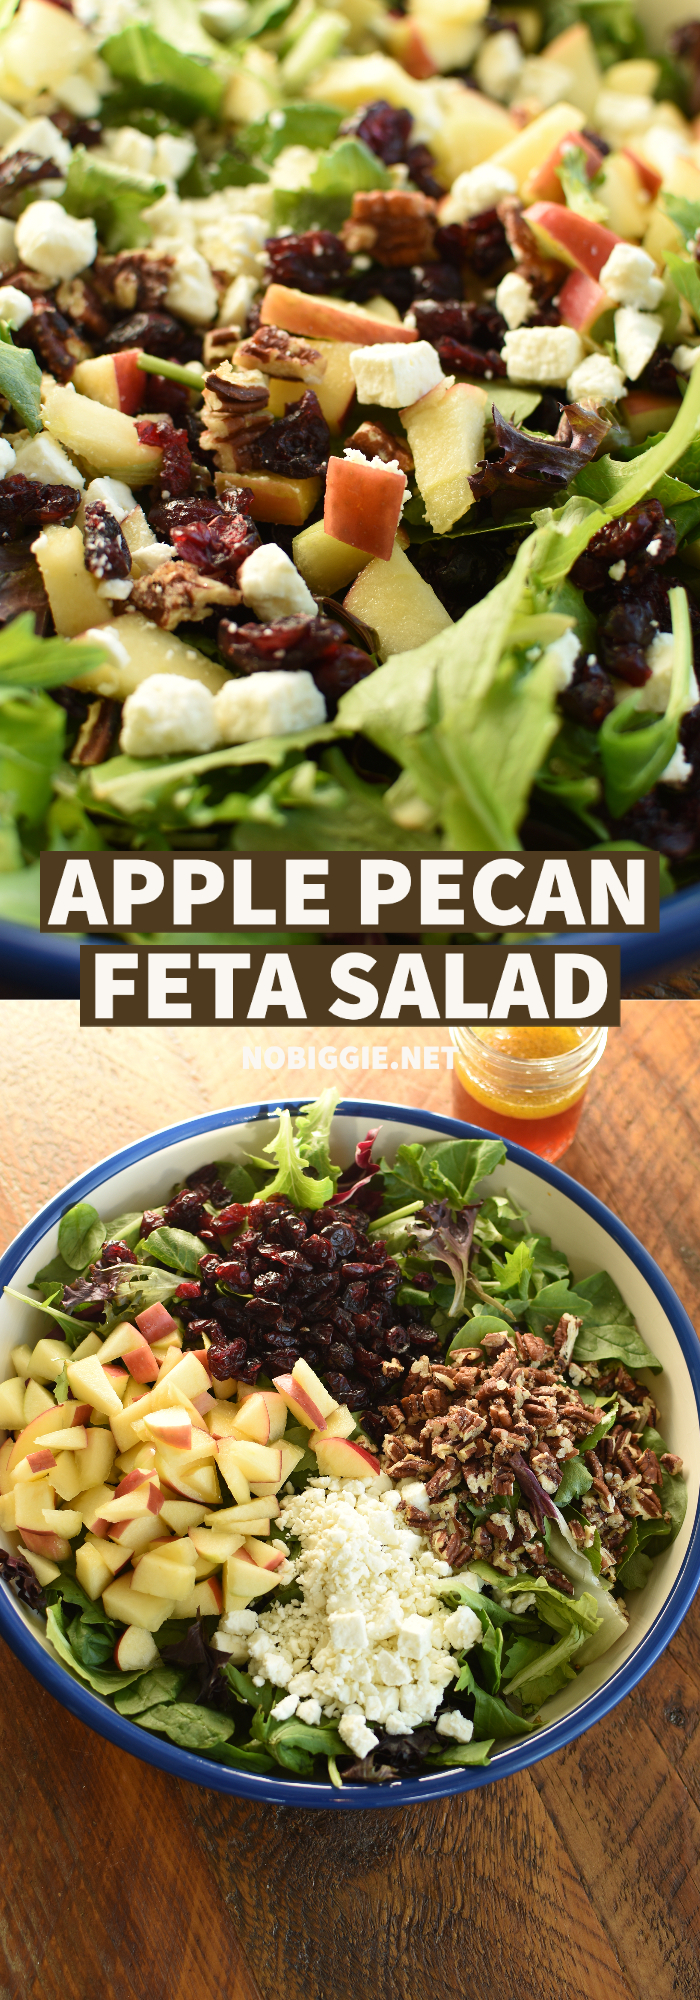 apple pecan feta salad | NoBiggie.net